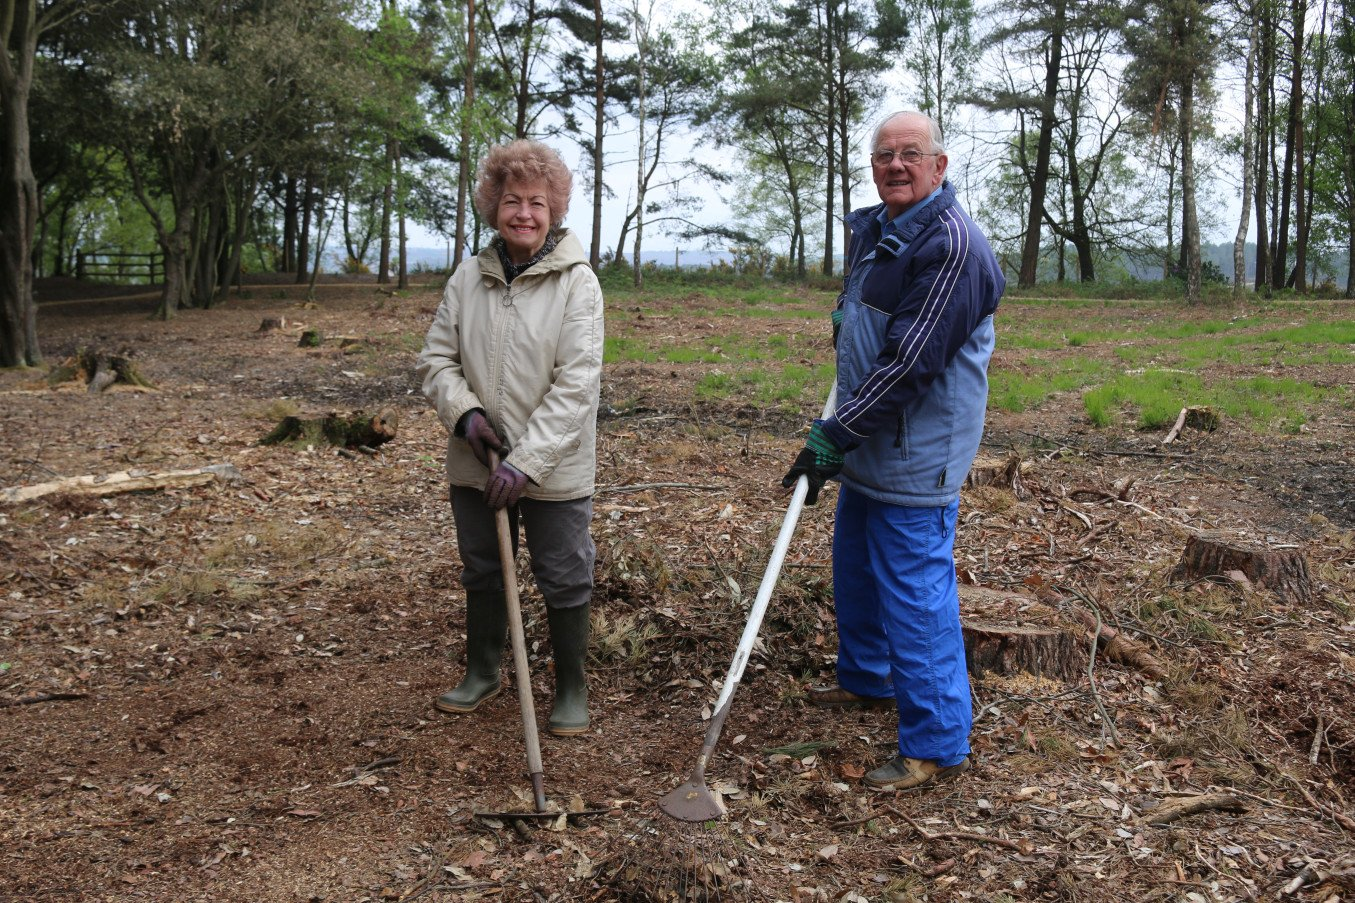 Audrey and Bill Clark volunteering at Avon Tyrell Scrub Bash in May 2017